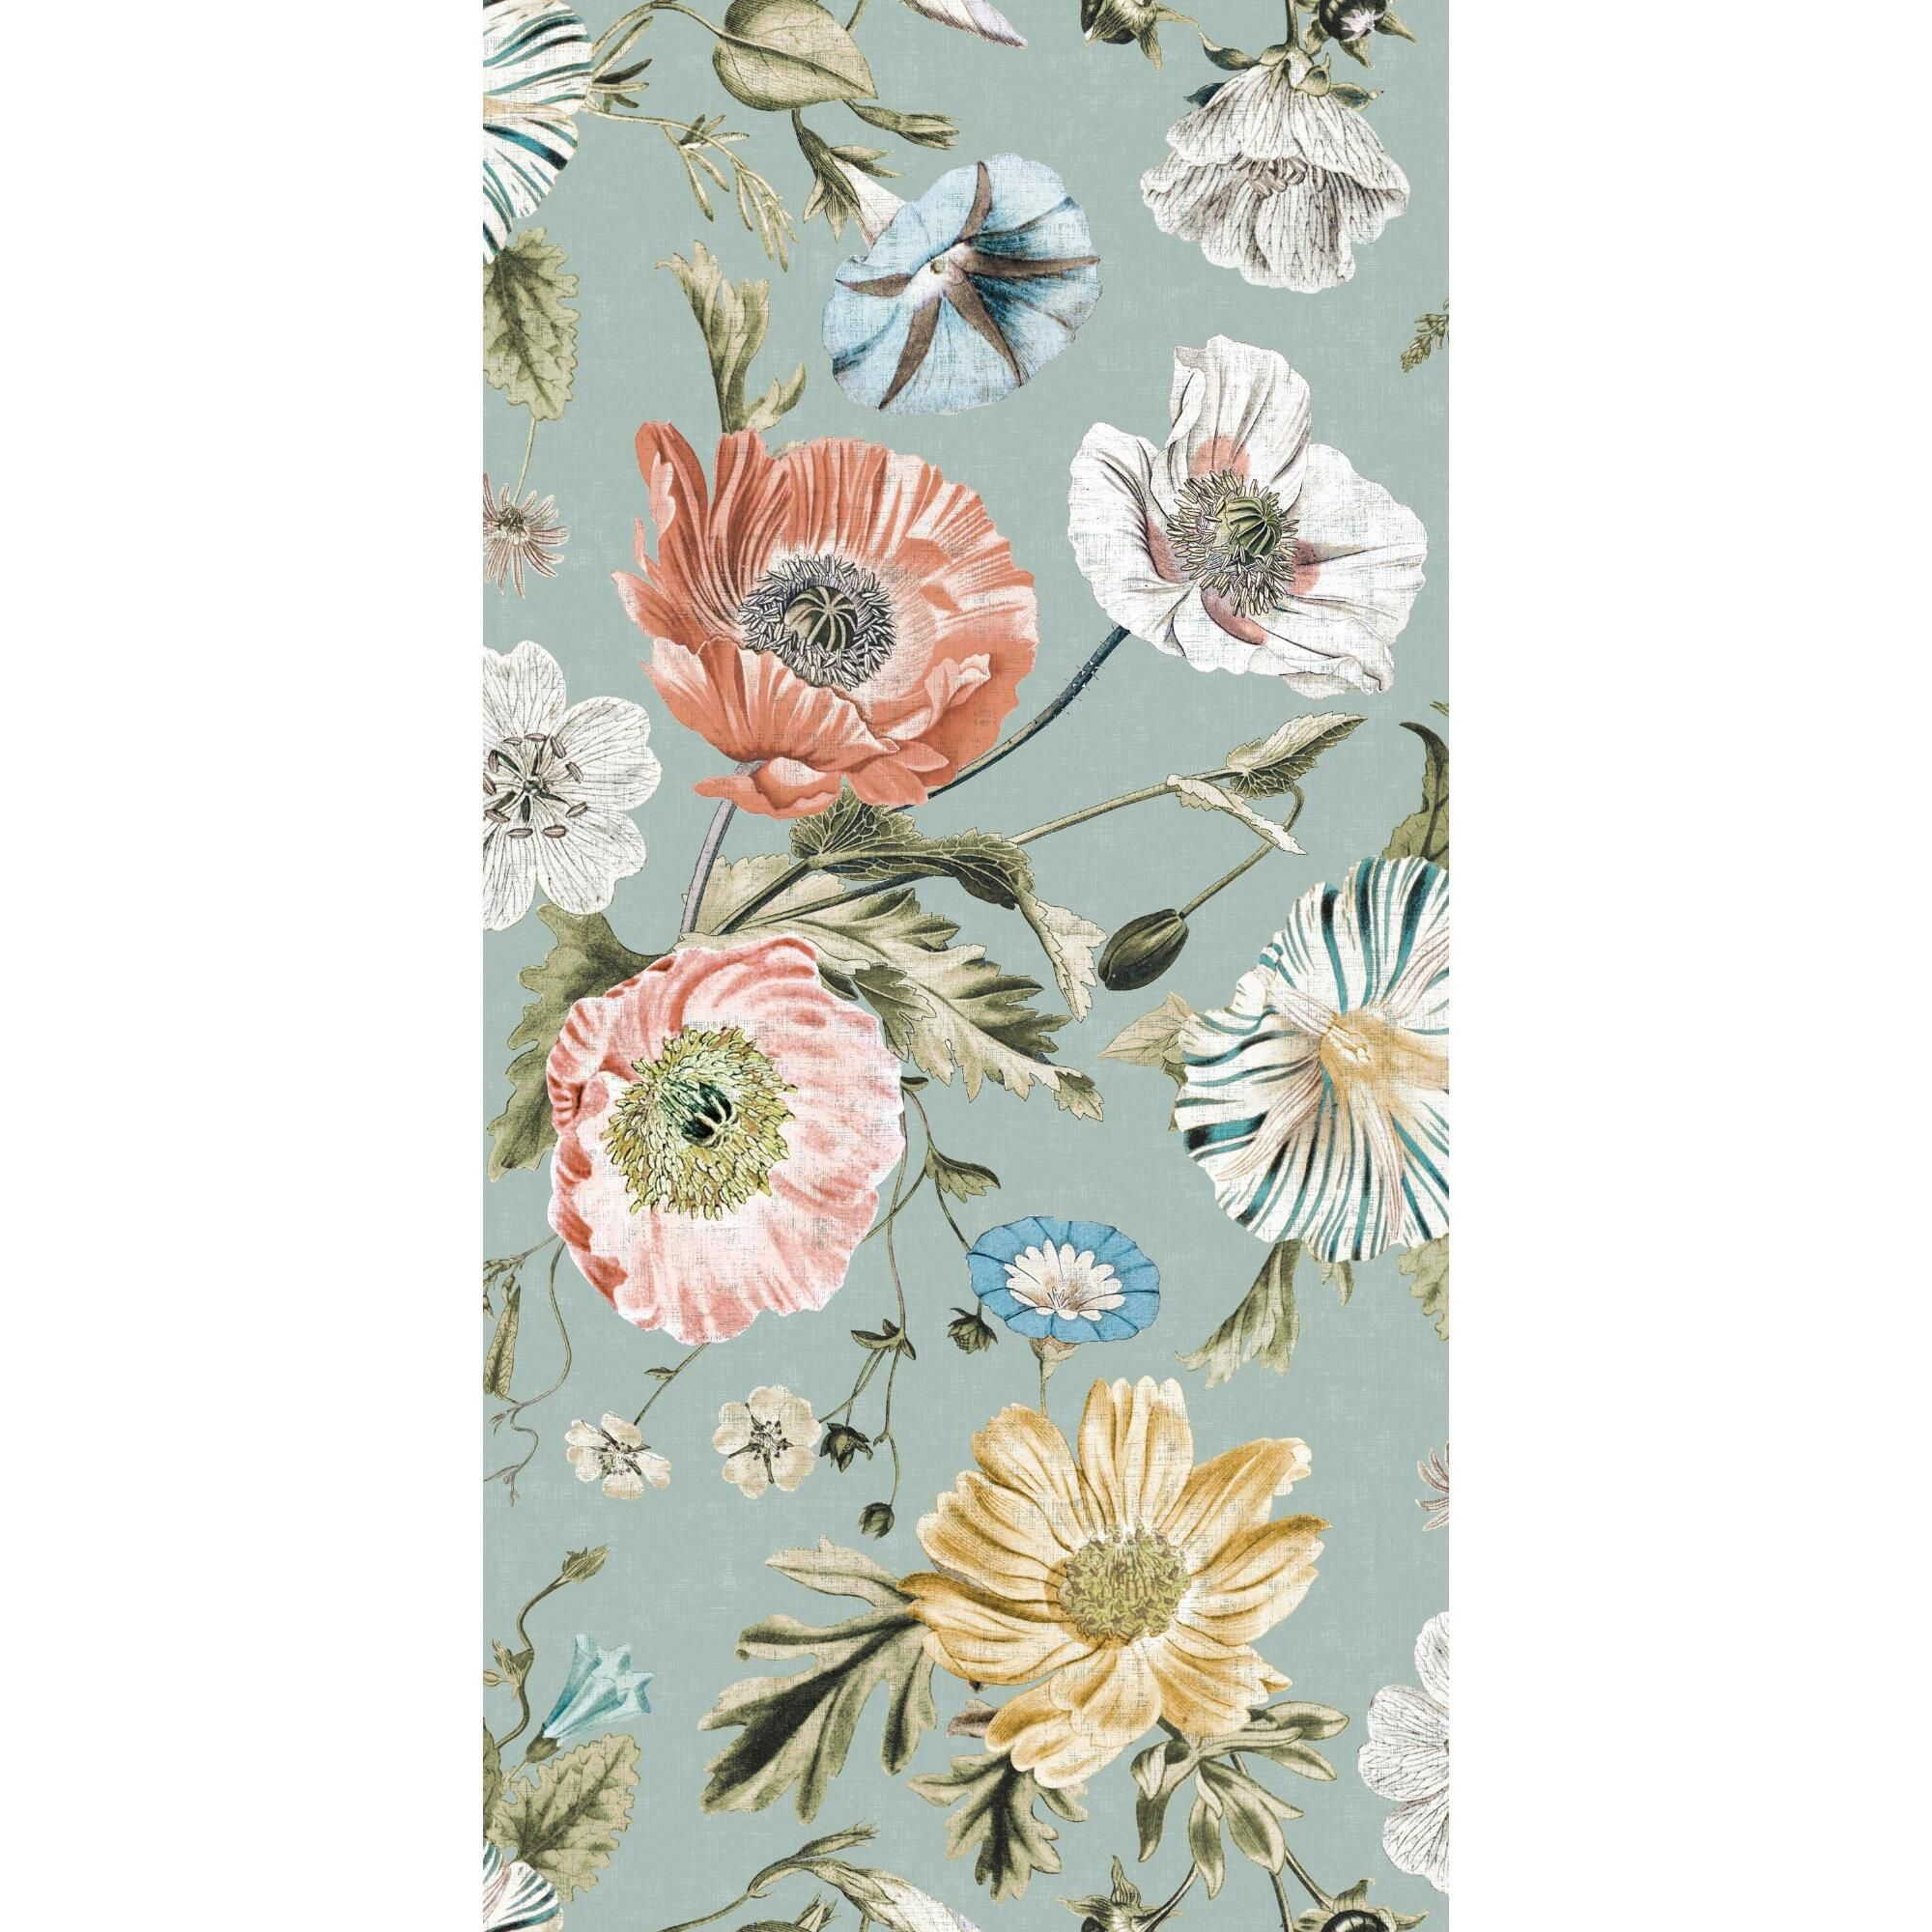 Dusty Teal Vintage Poppies Peel And Stick Wallpaper Blue Orange Multi By World Market Peel And Stick Wallpaper Diy Wallpaper Wallpaper